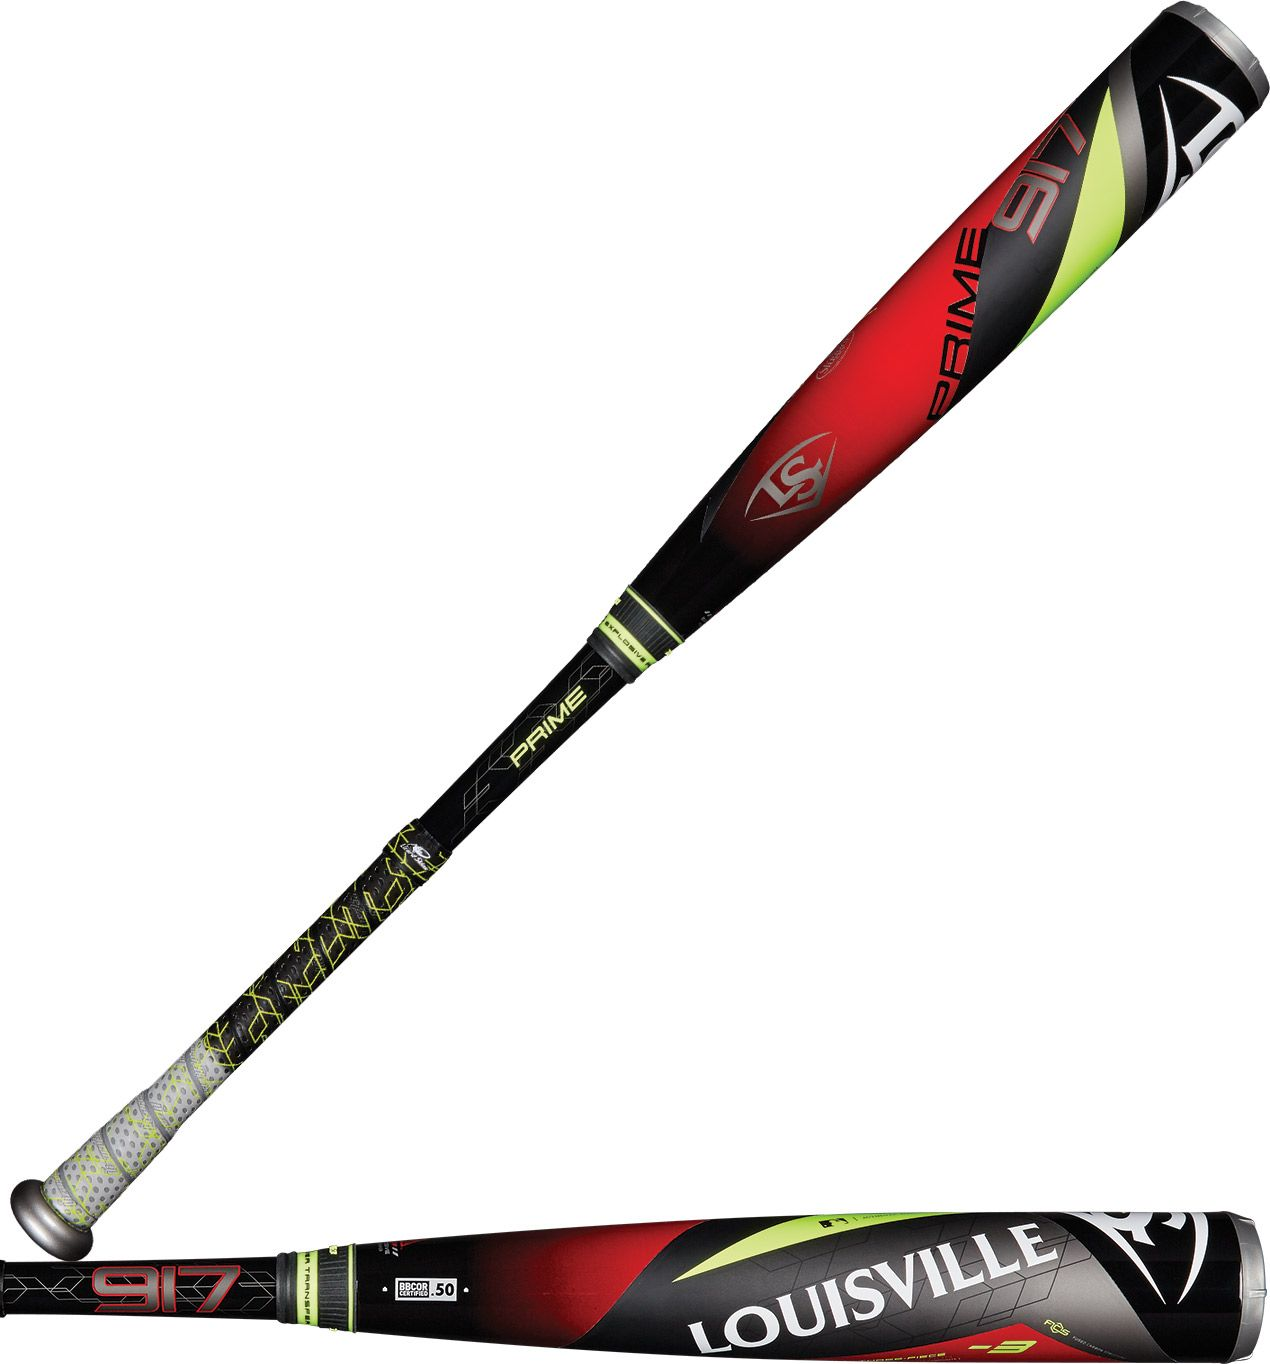 louisville slugger prime 917 review